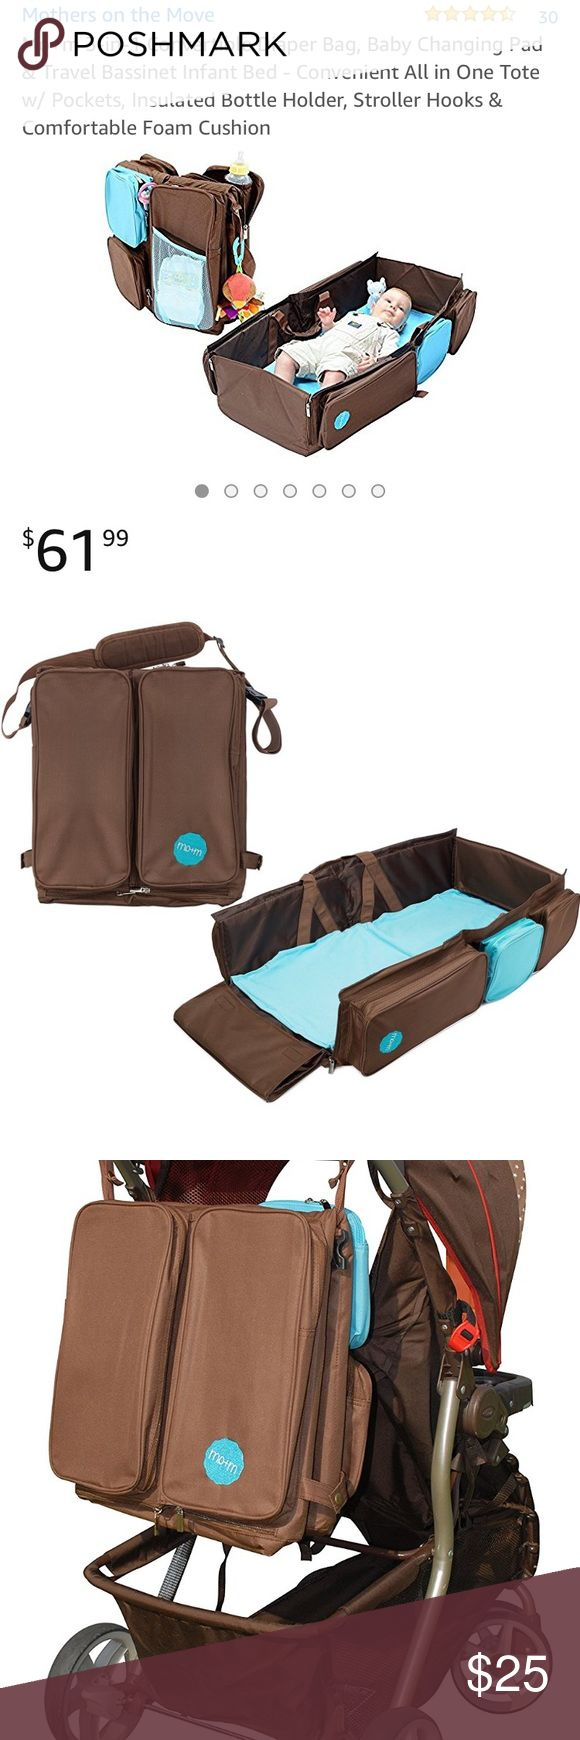 Baby diaper bag and bassinet Brand new brown diaper bag, changing Matt and portable bassinet Other